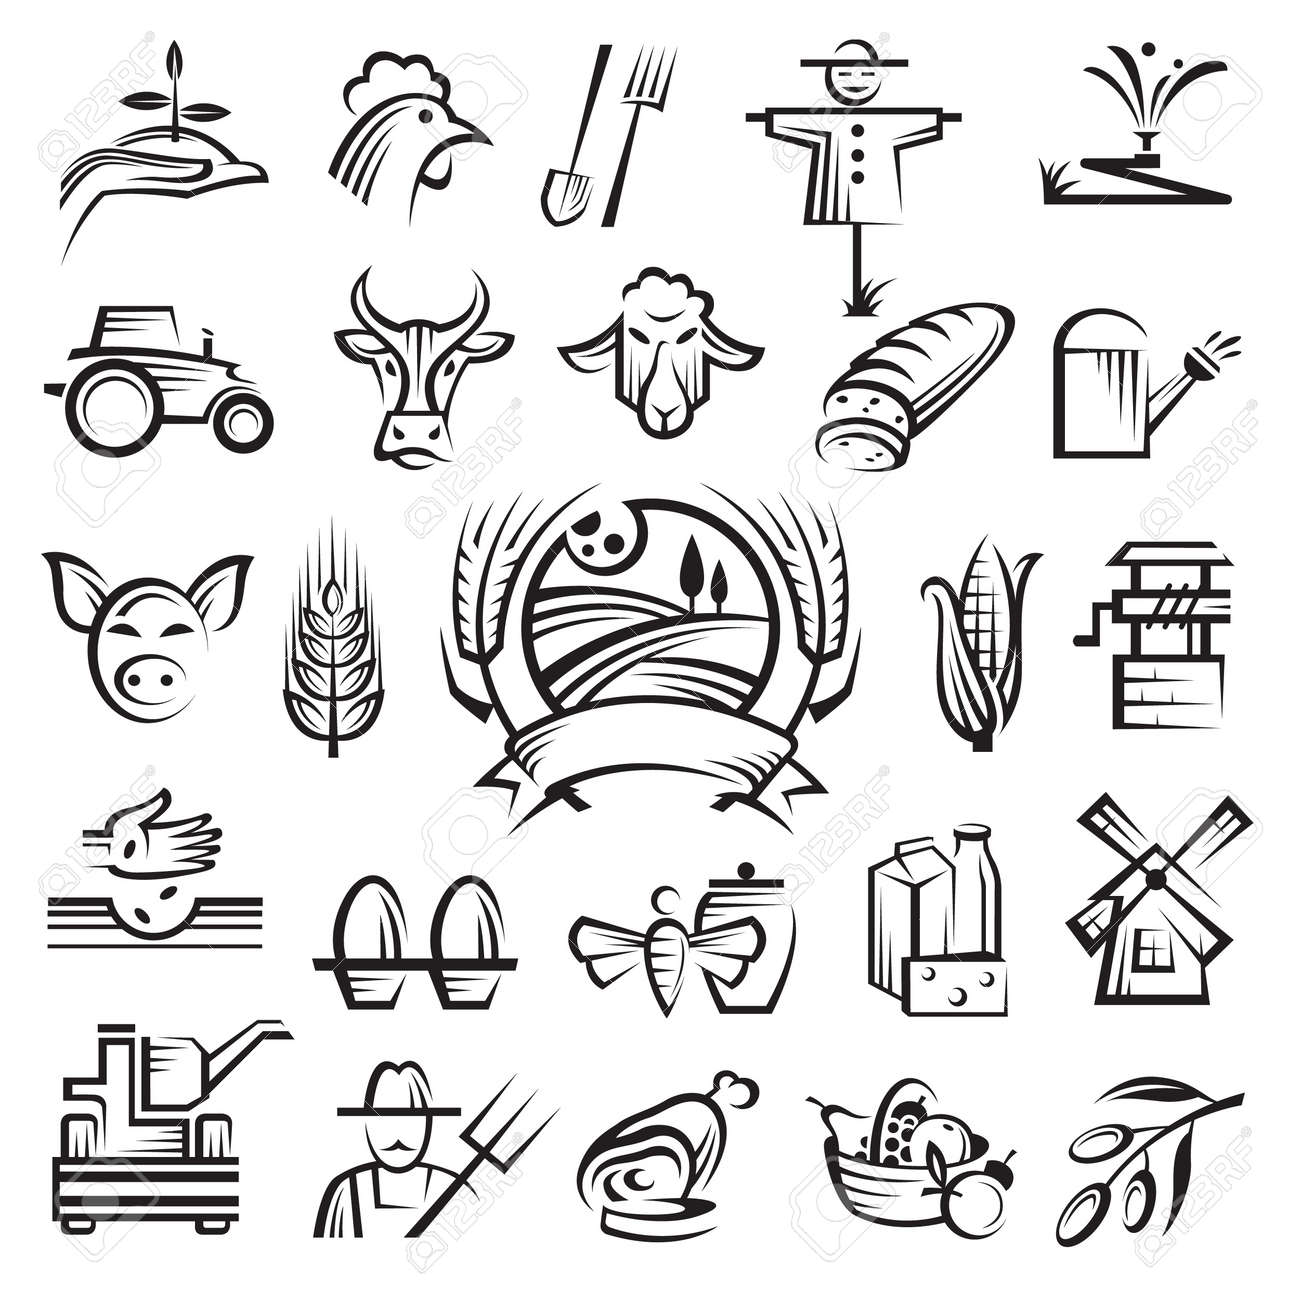 Agriculture Clipart Black And White of twenty-five agriculture